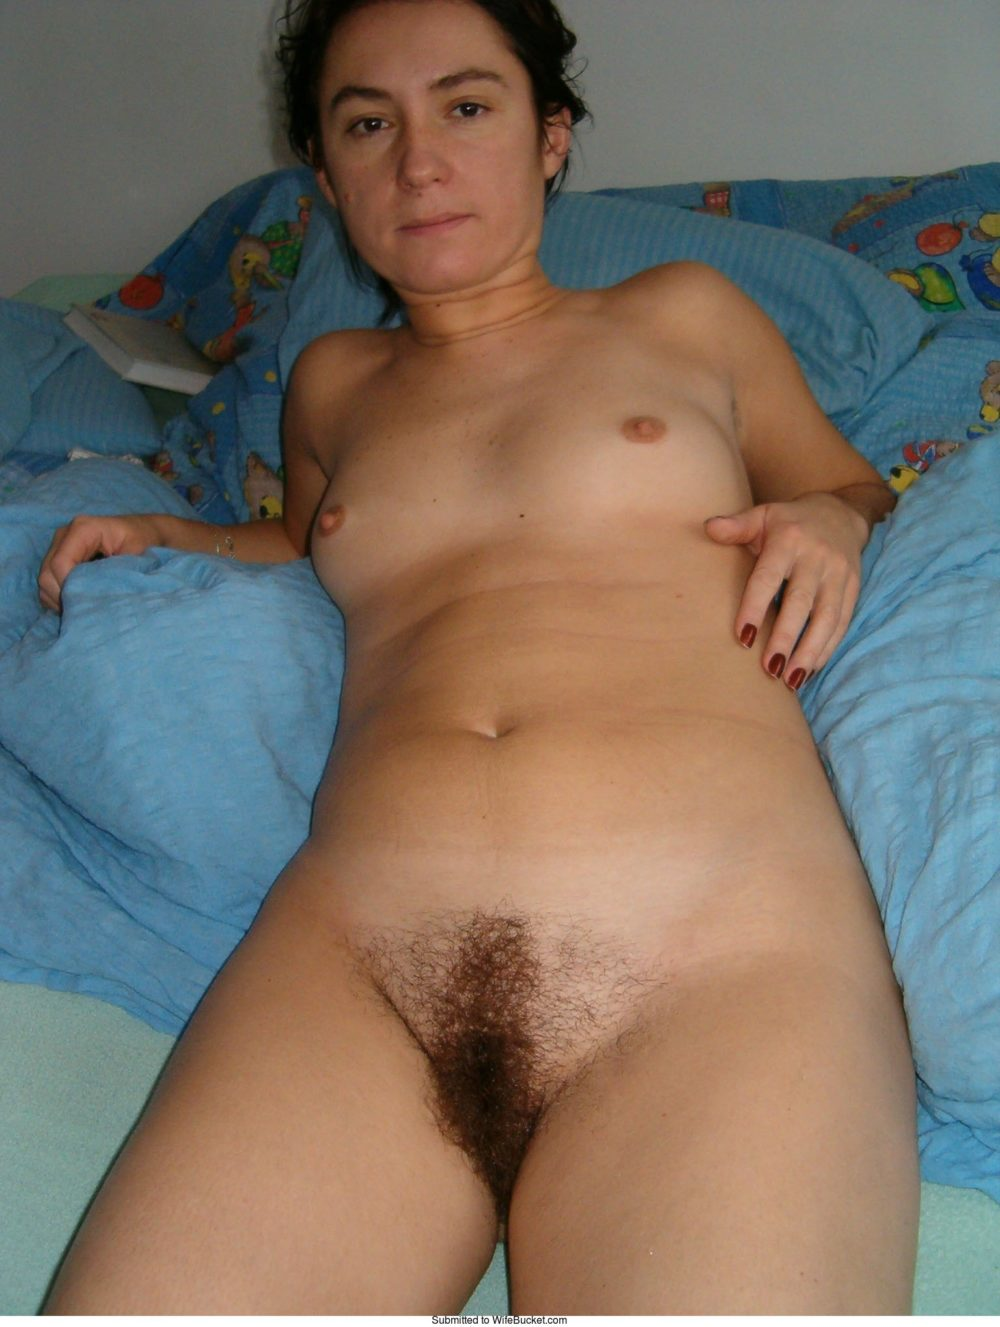 Mixed Pics Of Hairy Amateur Milfs  Wifebucket  Offical -7808